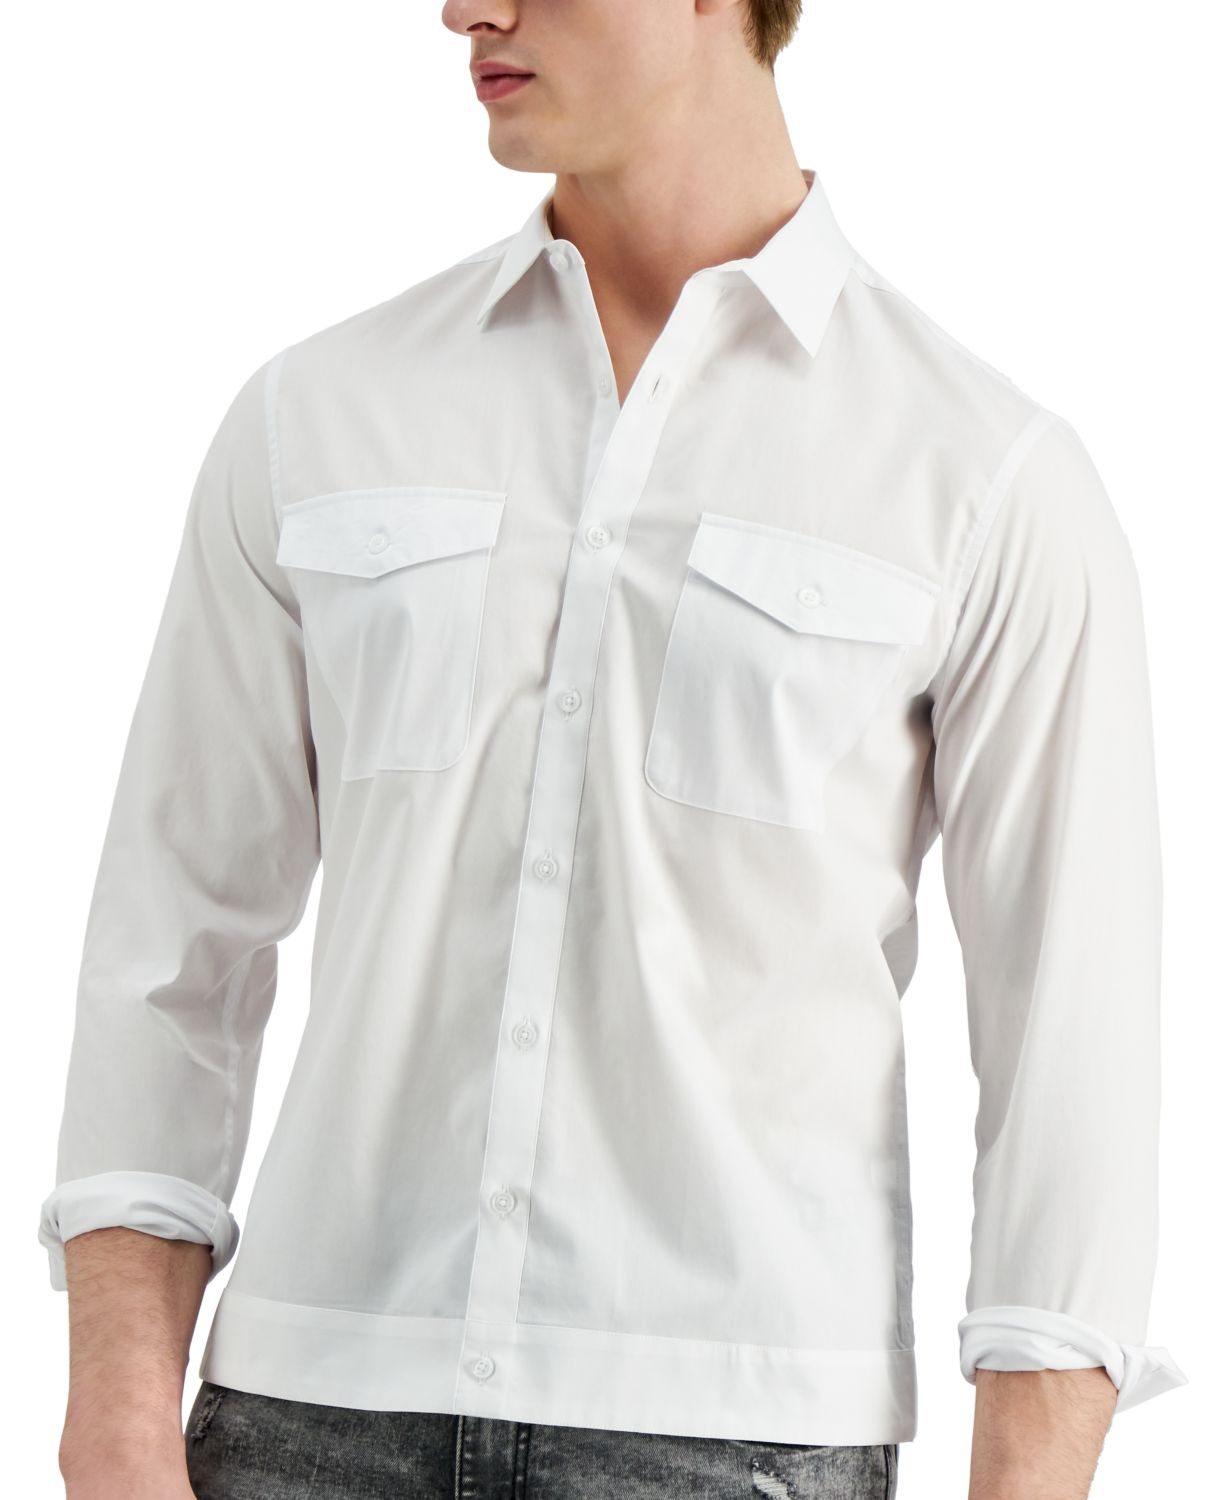 INC International Concepts Allen Onyia for INC Men's Button-Down Shirt, Created for Macy's & Reviews - Casual Button-Down Shirts - Men - Macy's